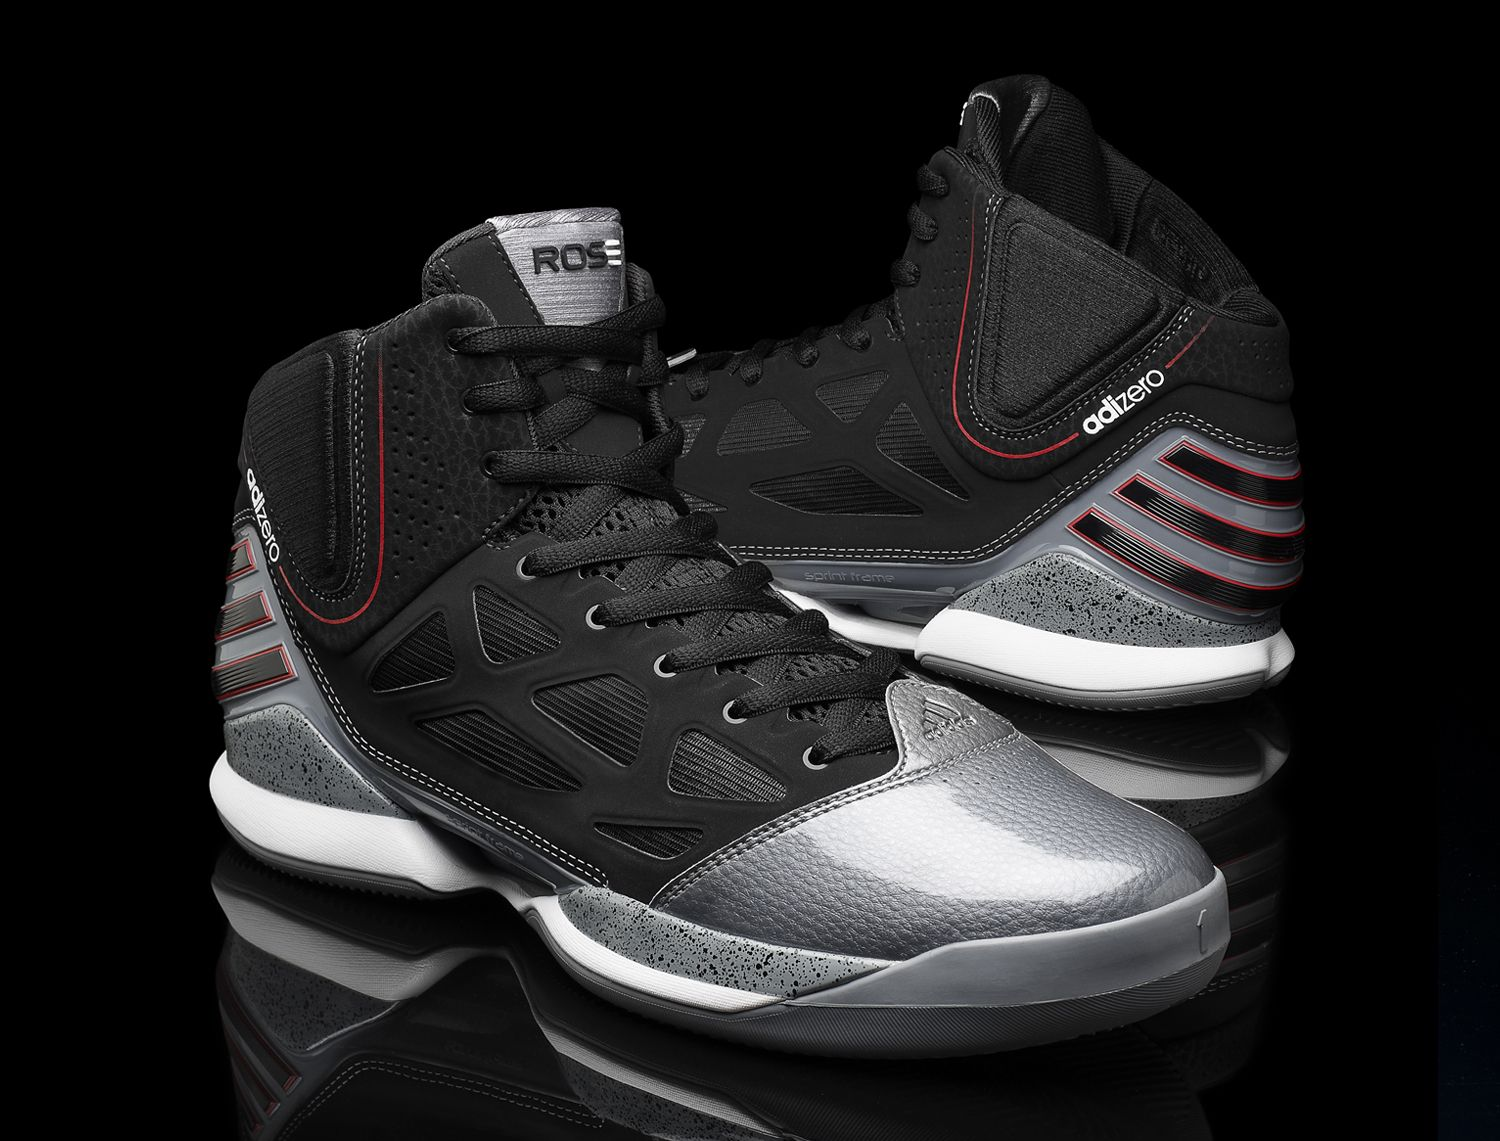 promo code c4f74 ca108 Next pair of basketball shoes. Derrick Rose For adiZero Rose 2.5 Pair To  The NBA Playoffs ~ A Taste Of Goodness